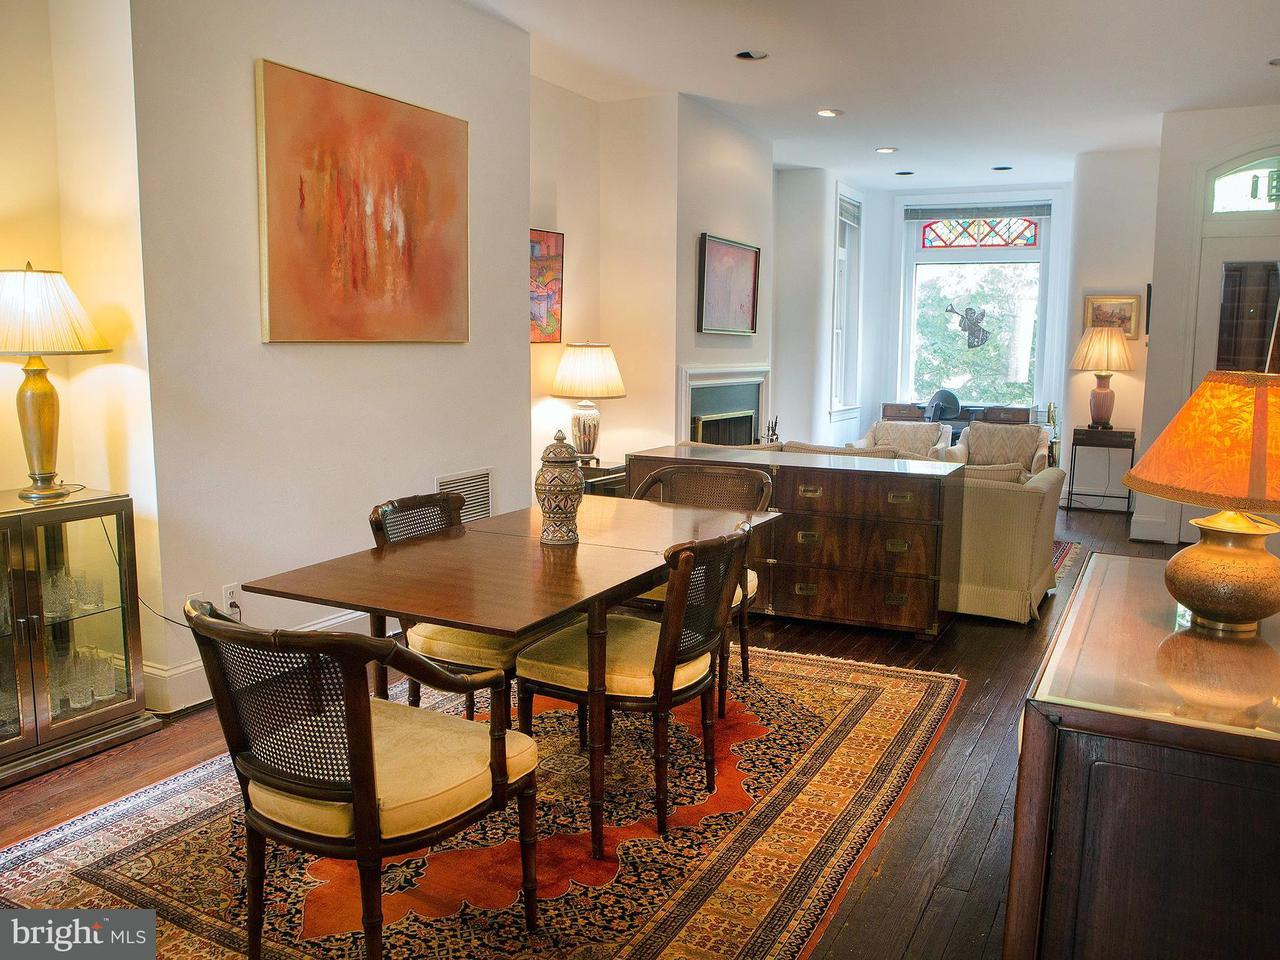 Additional photo for property listing at 323 5th St SE  Washington, District Of Columbia 20003 United States